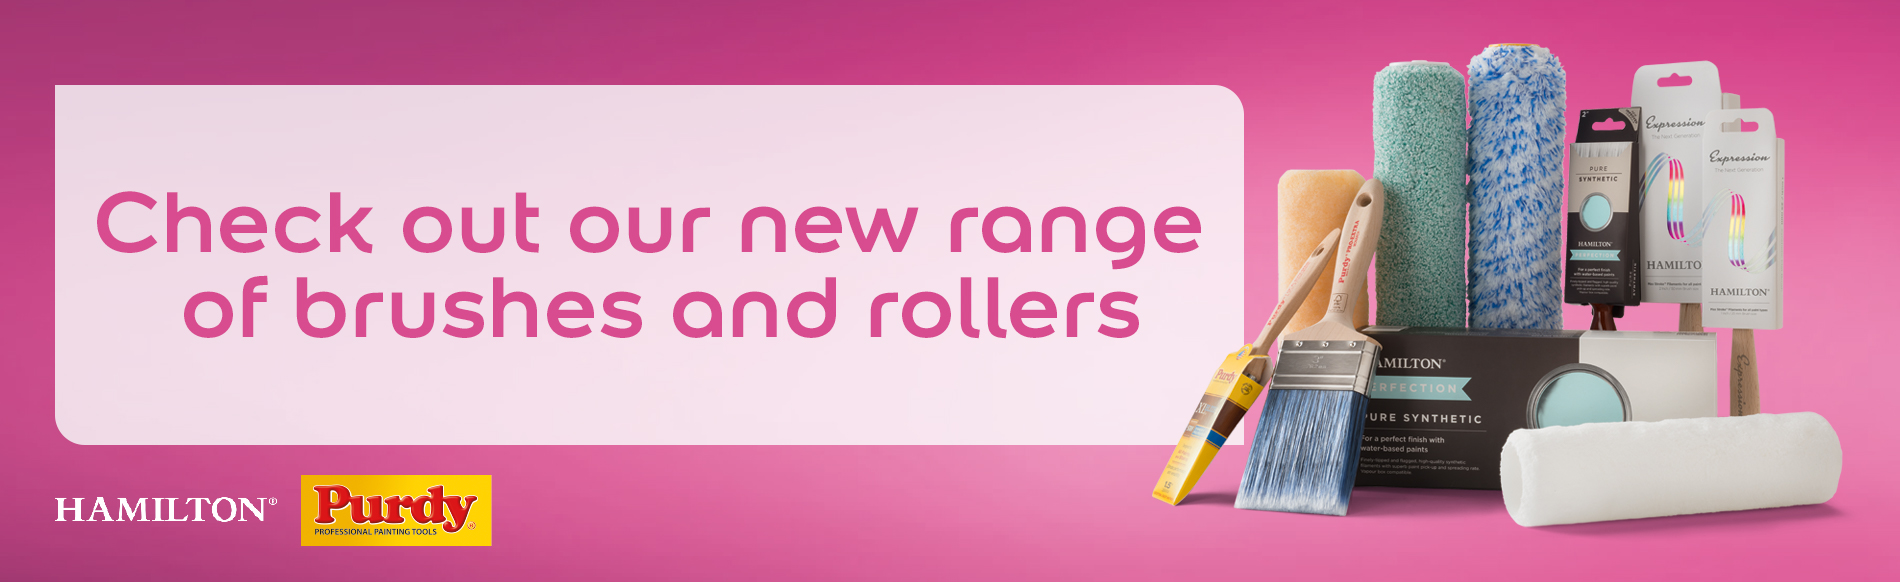 Check out our new range of brushes and rollers